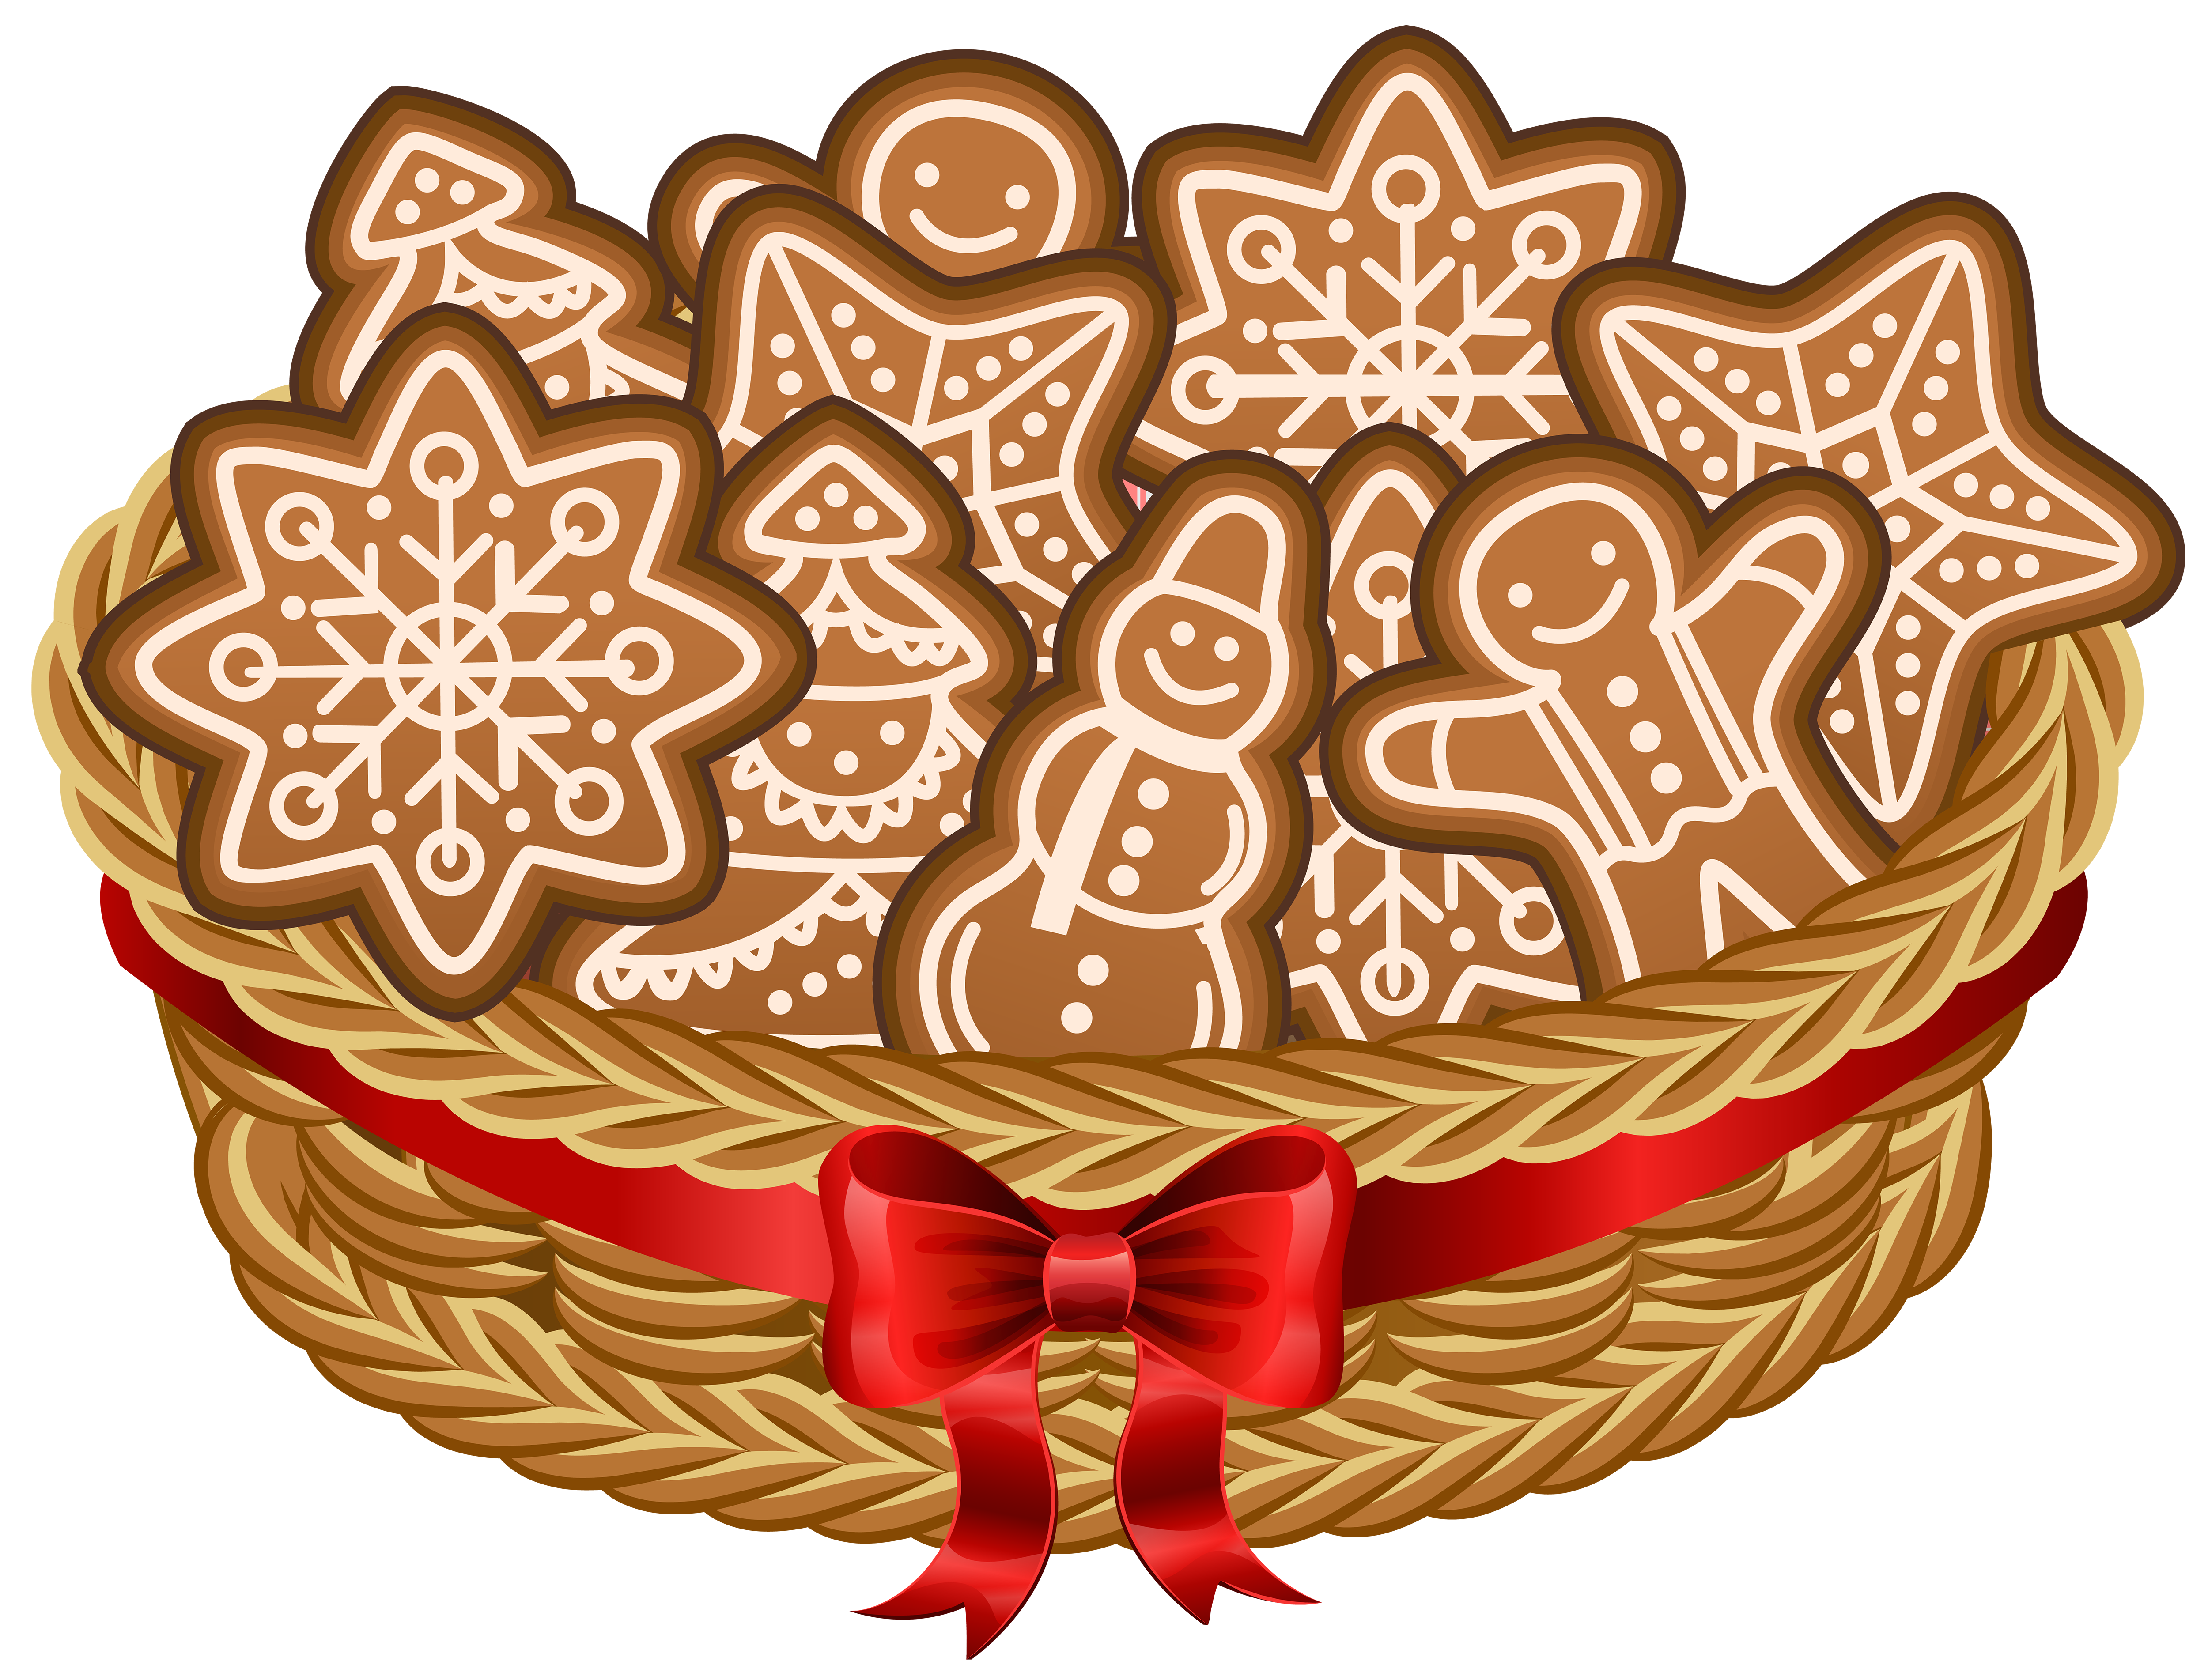 Cookie clipart basket cookie. Christmas with gingerbread cookies